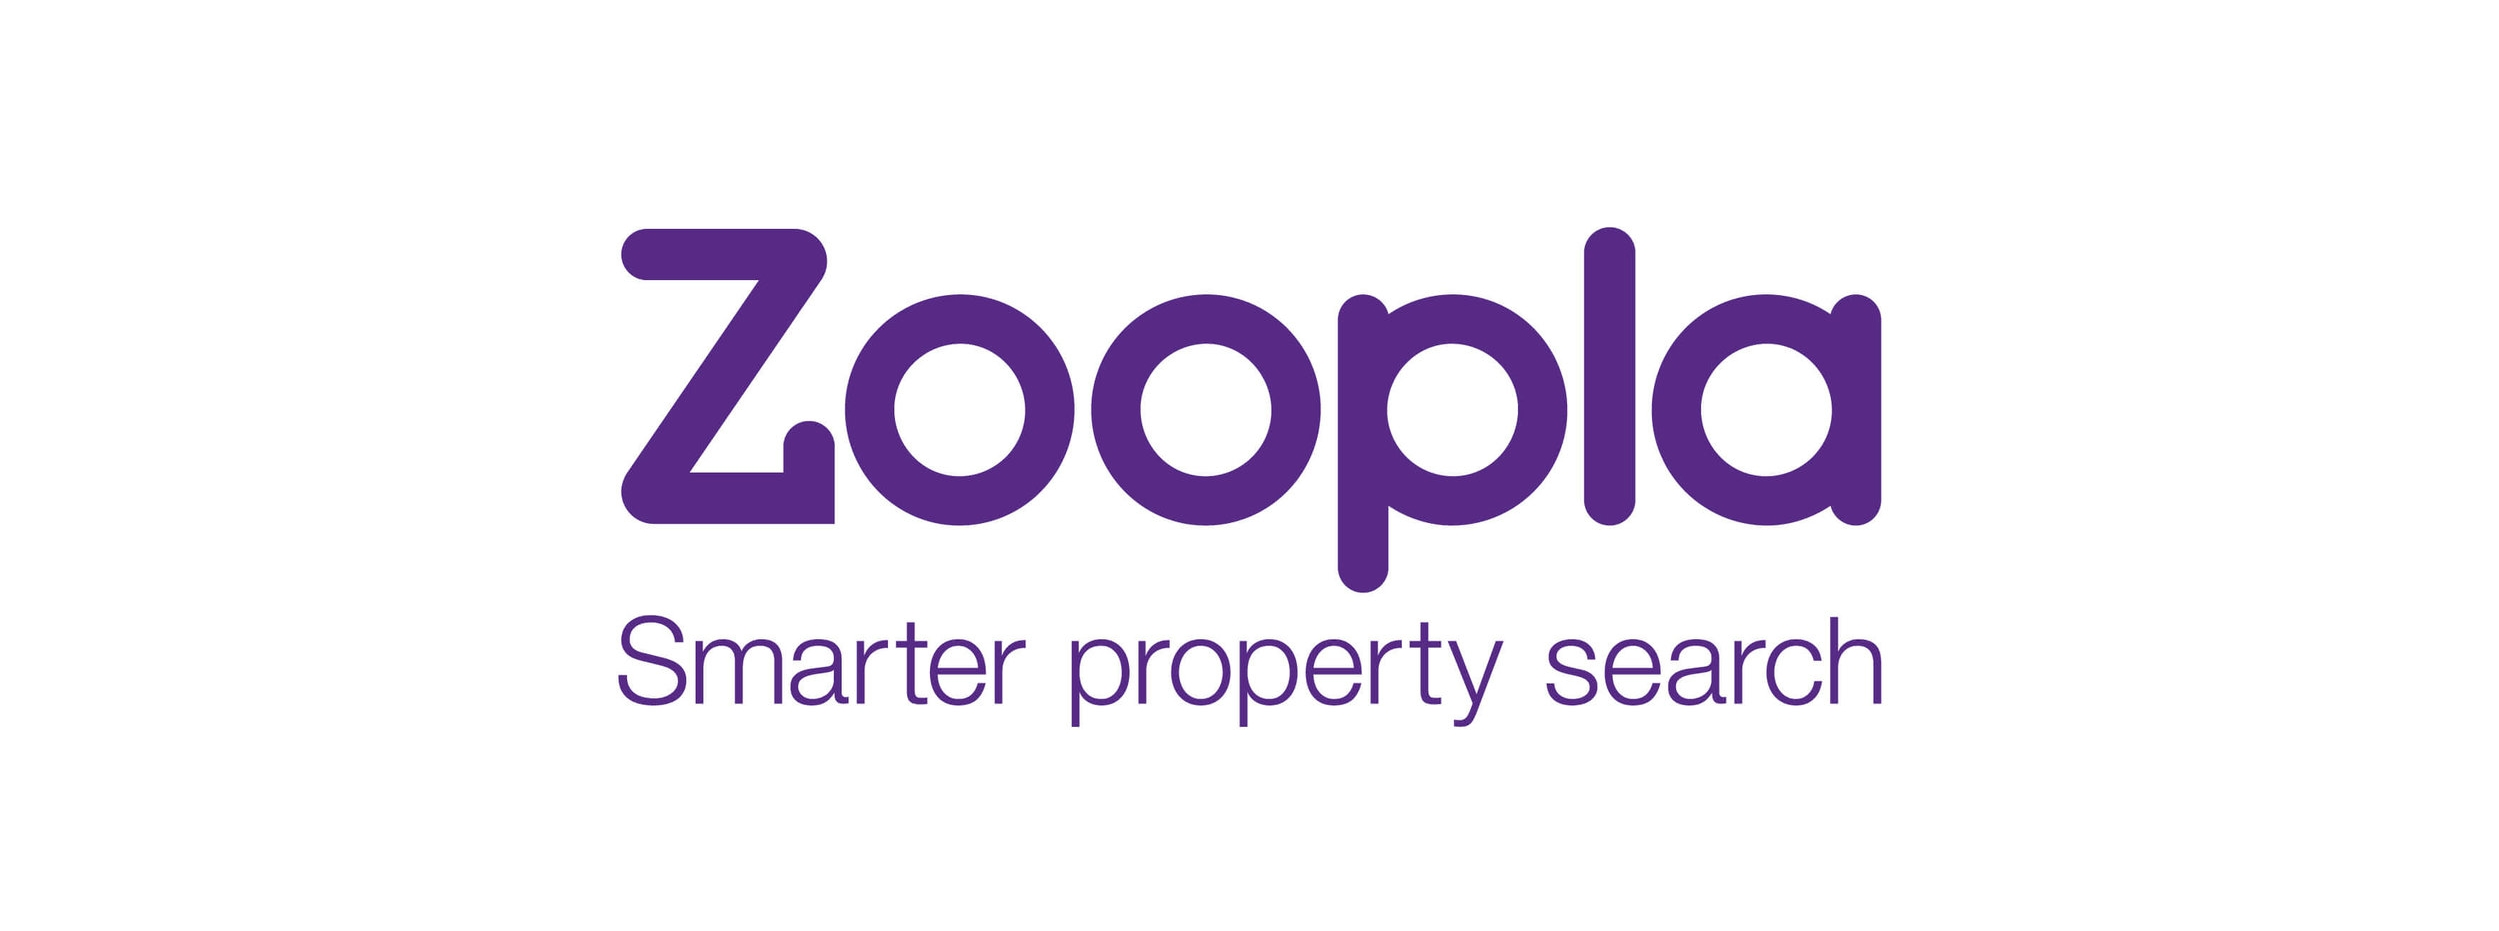 zoopla_logo-01.jpg